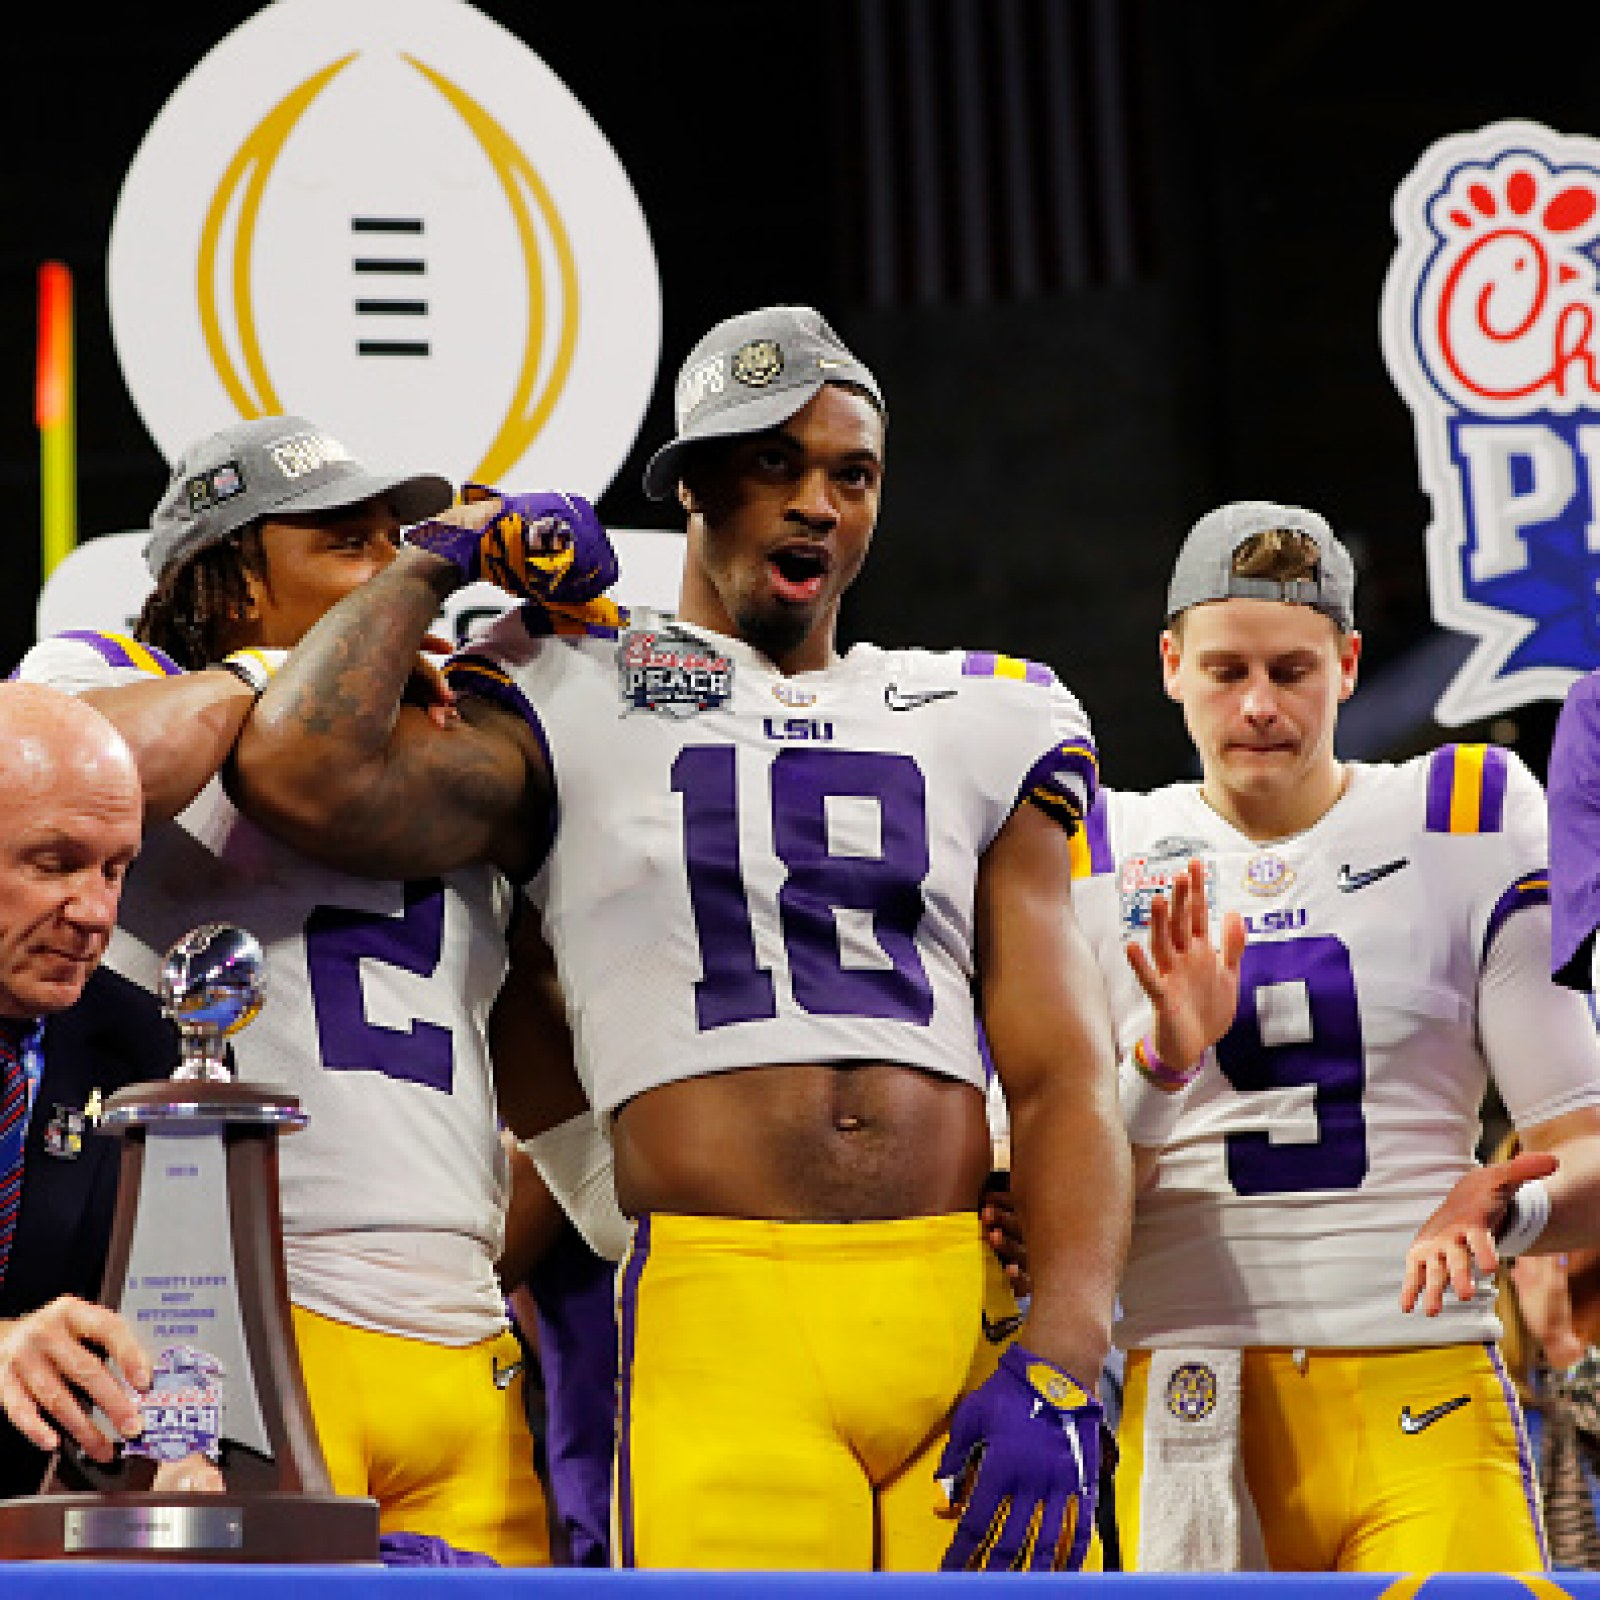 Who Won Lsu Or Clemson >> Lsu The Early Favorite Over Clemson In College Football